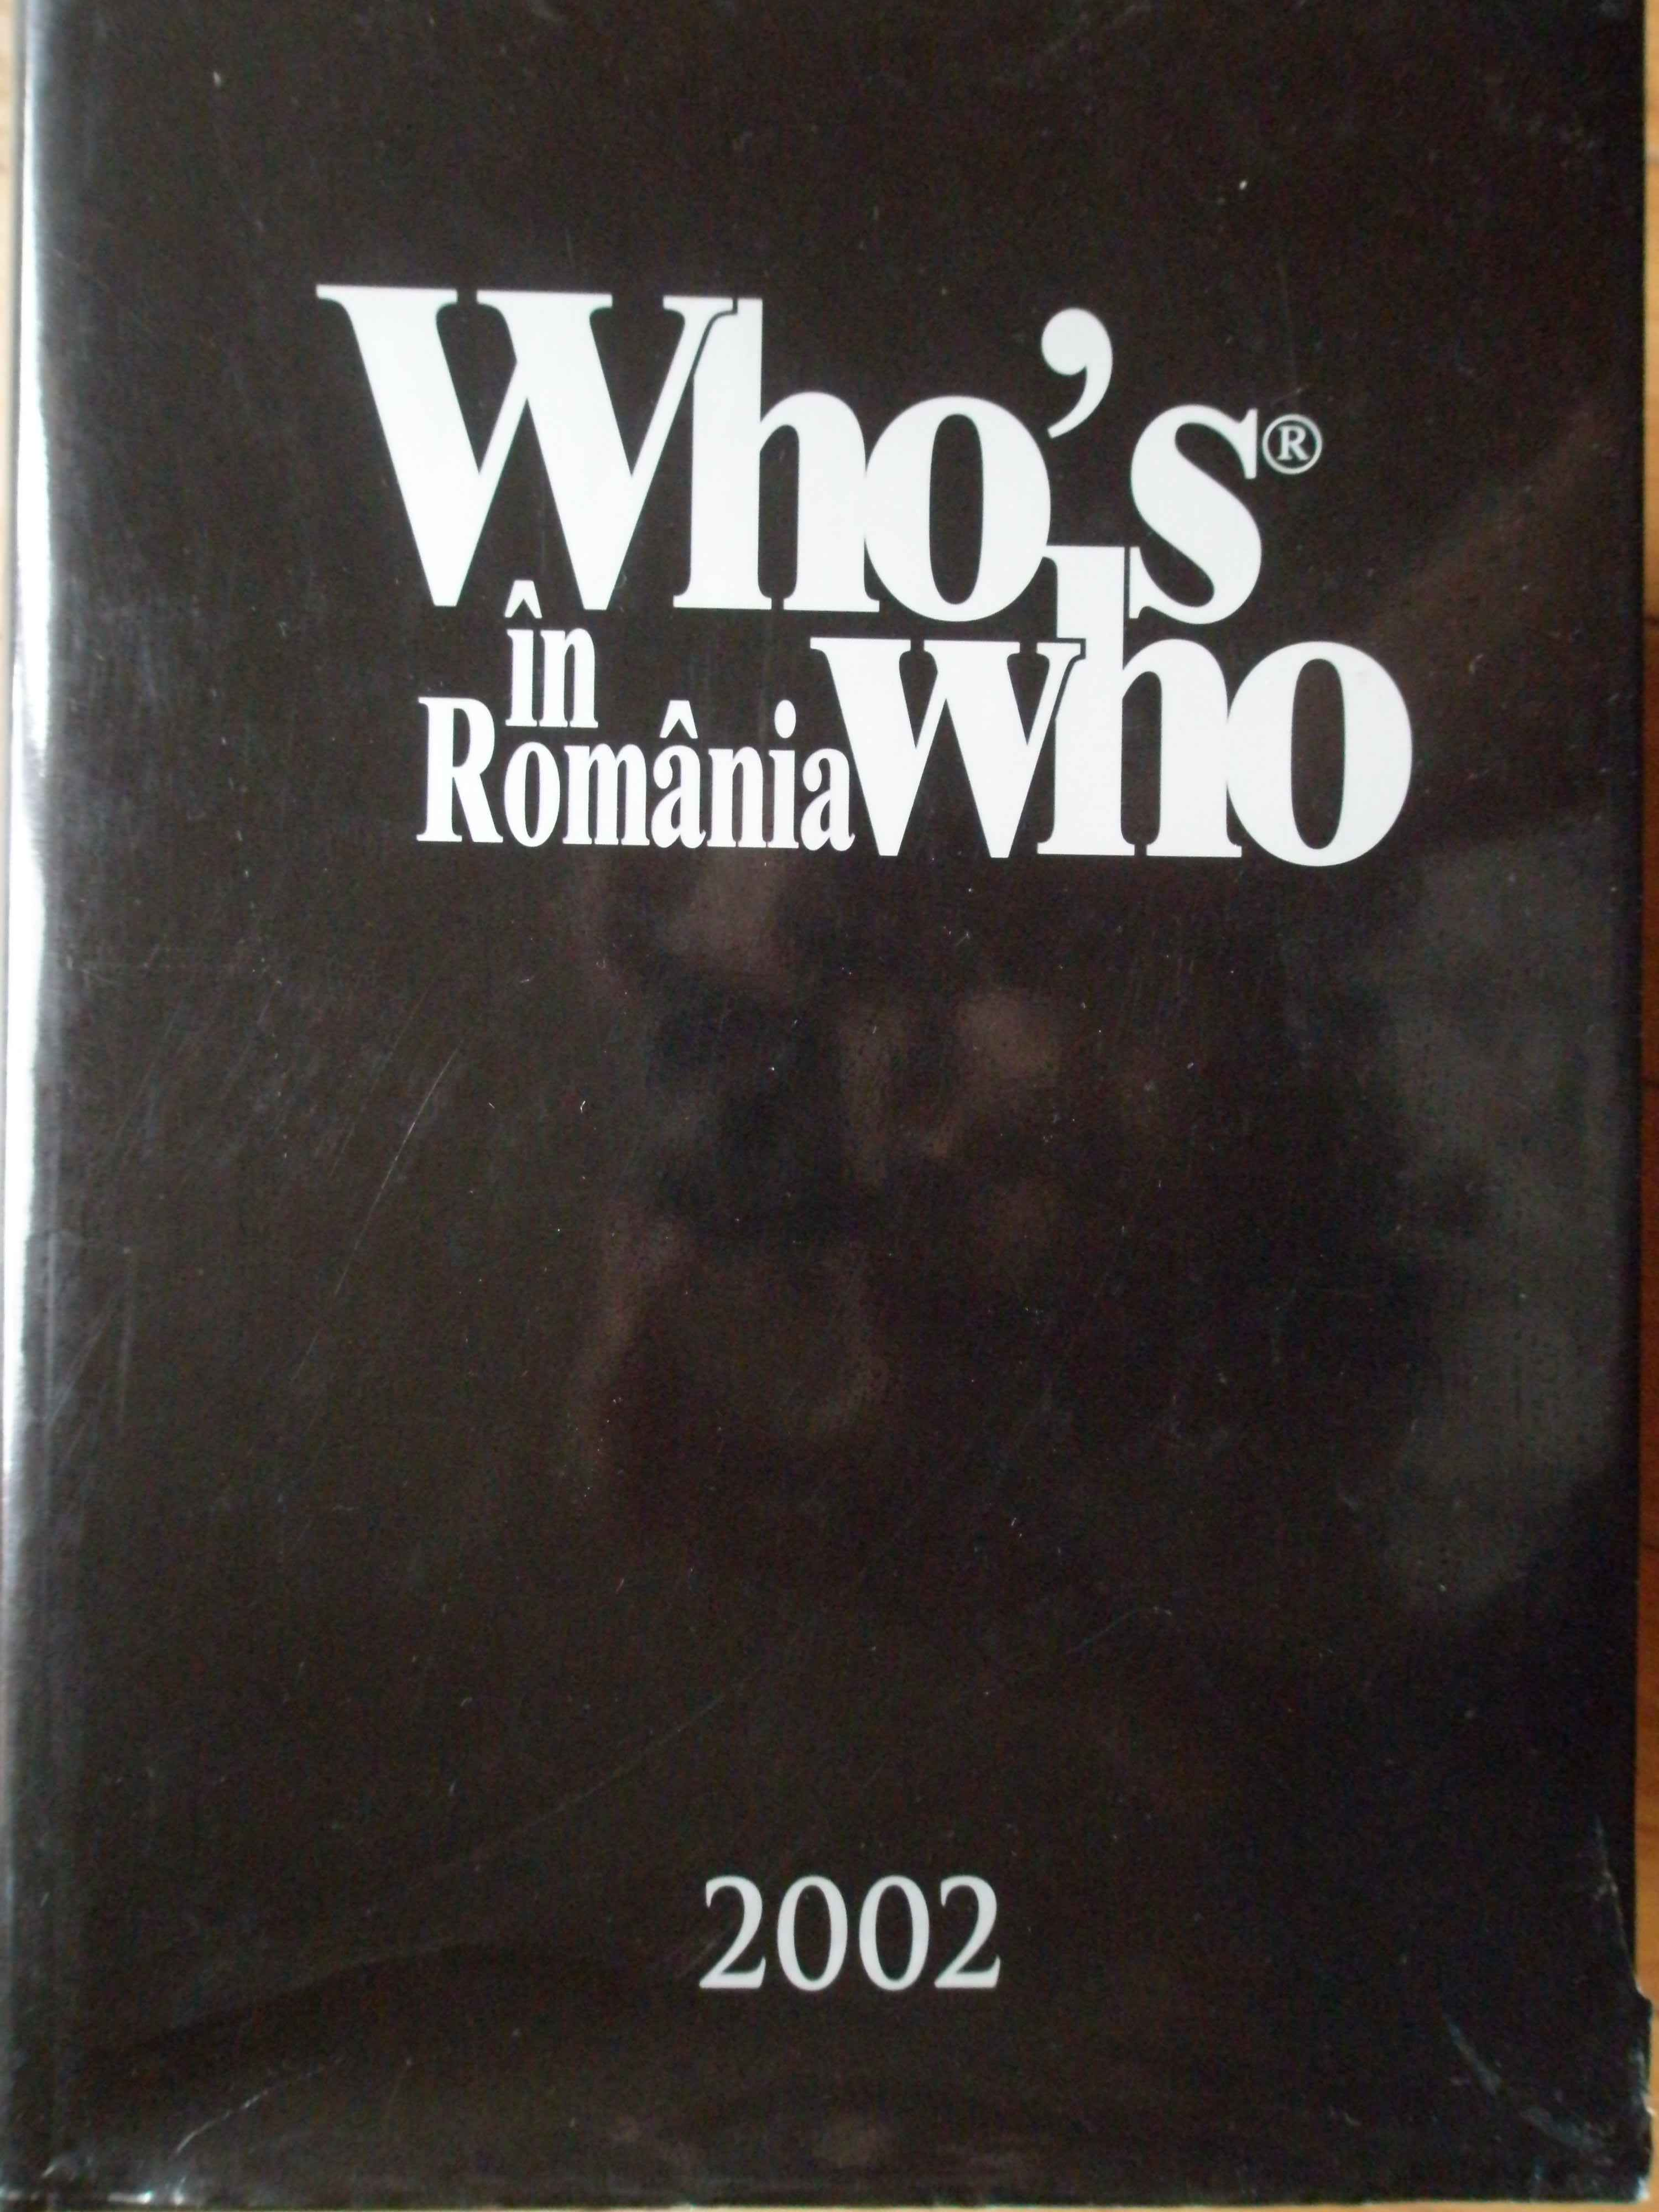 who's who in romania                                                                                 colectiv